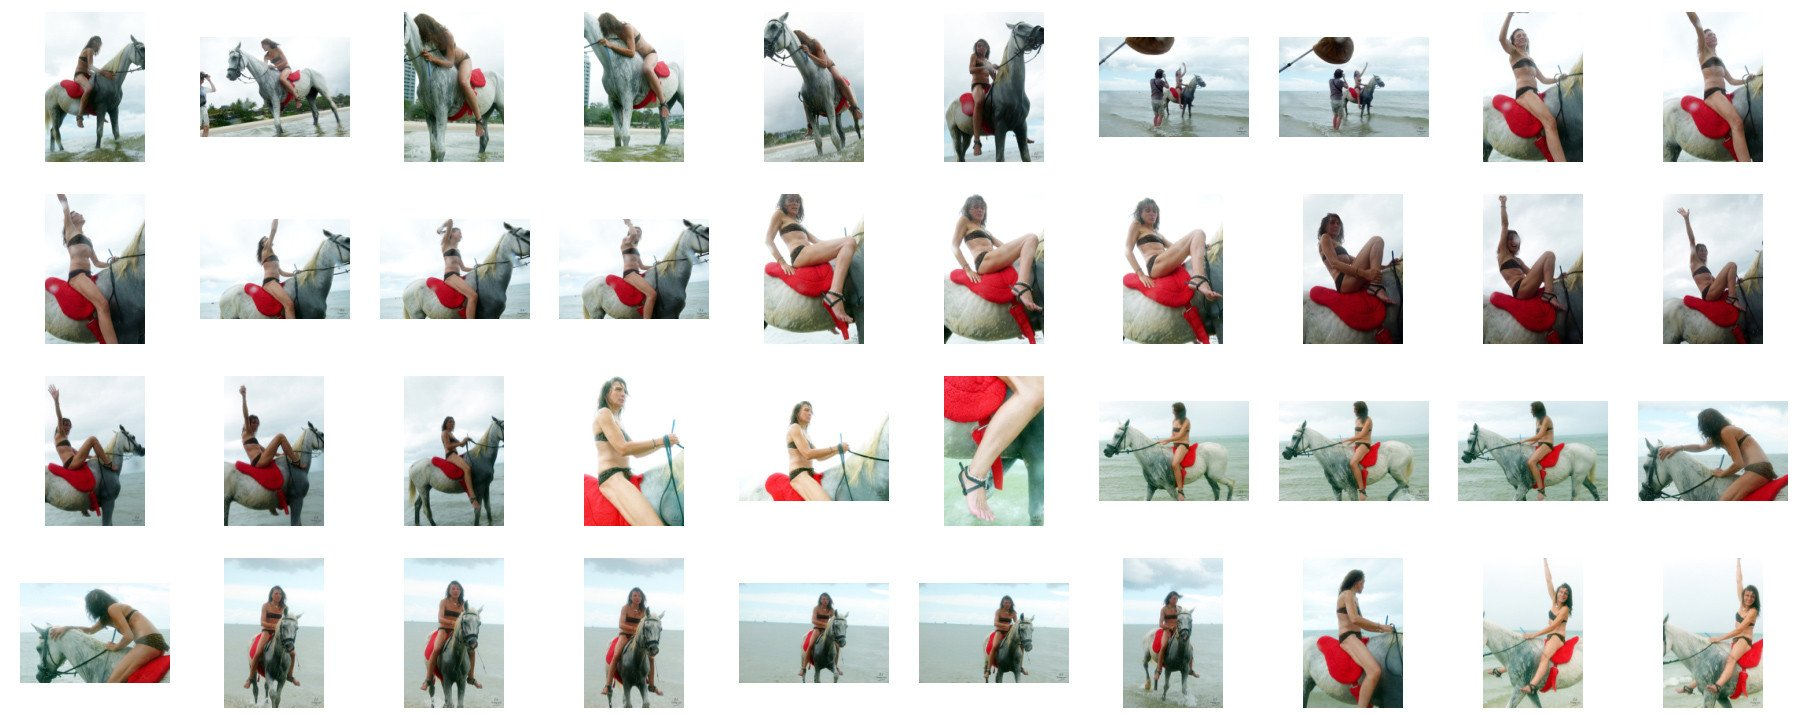 Claire in Bikini Riding Bareback on White Arabian Horse, Part 9 - Riding.Vision